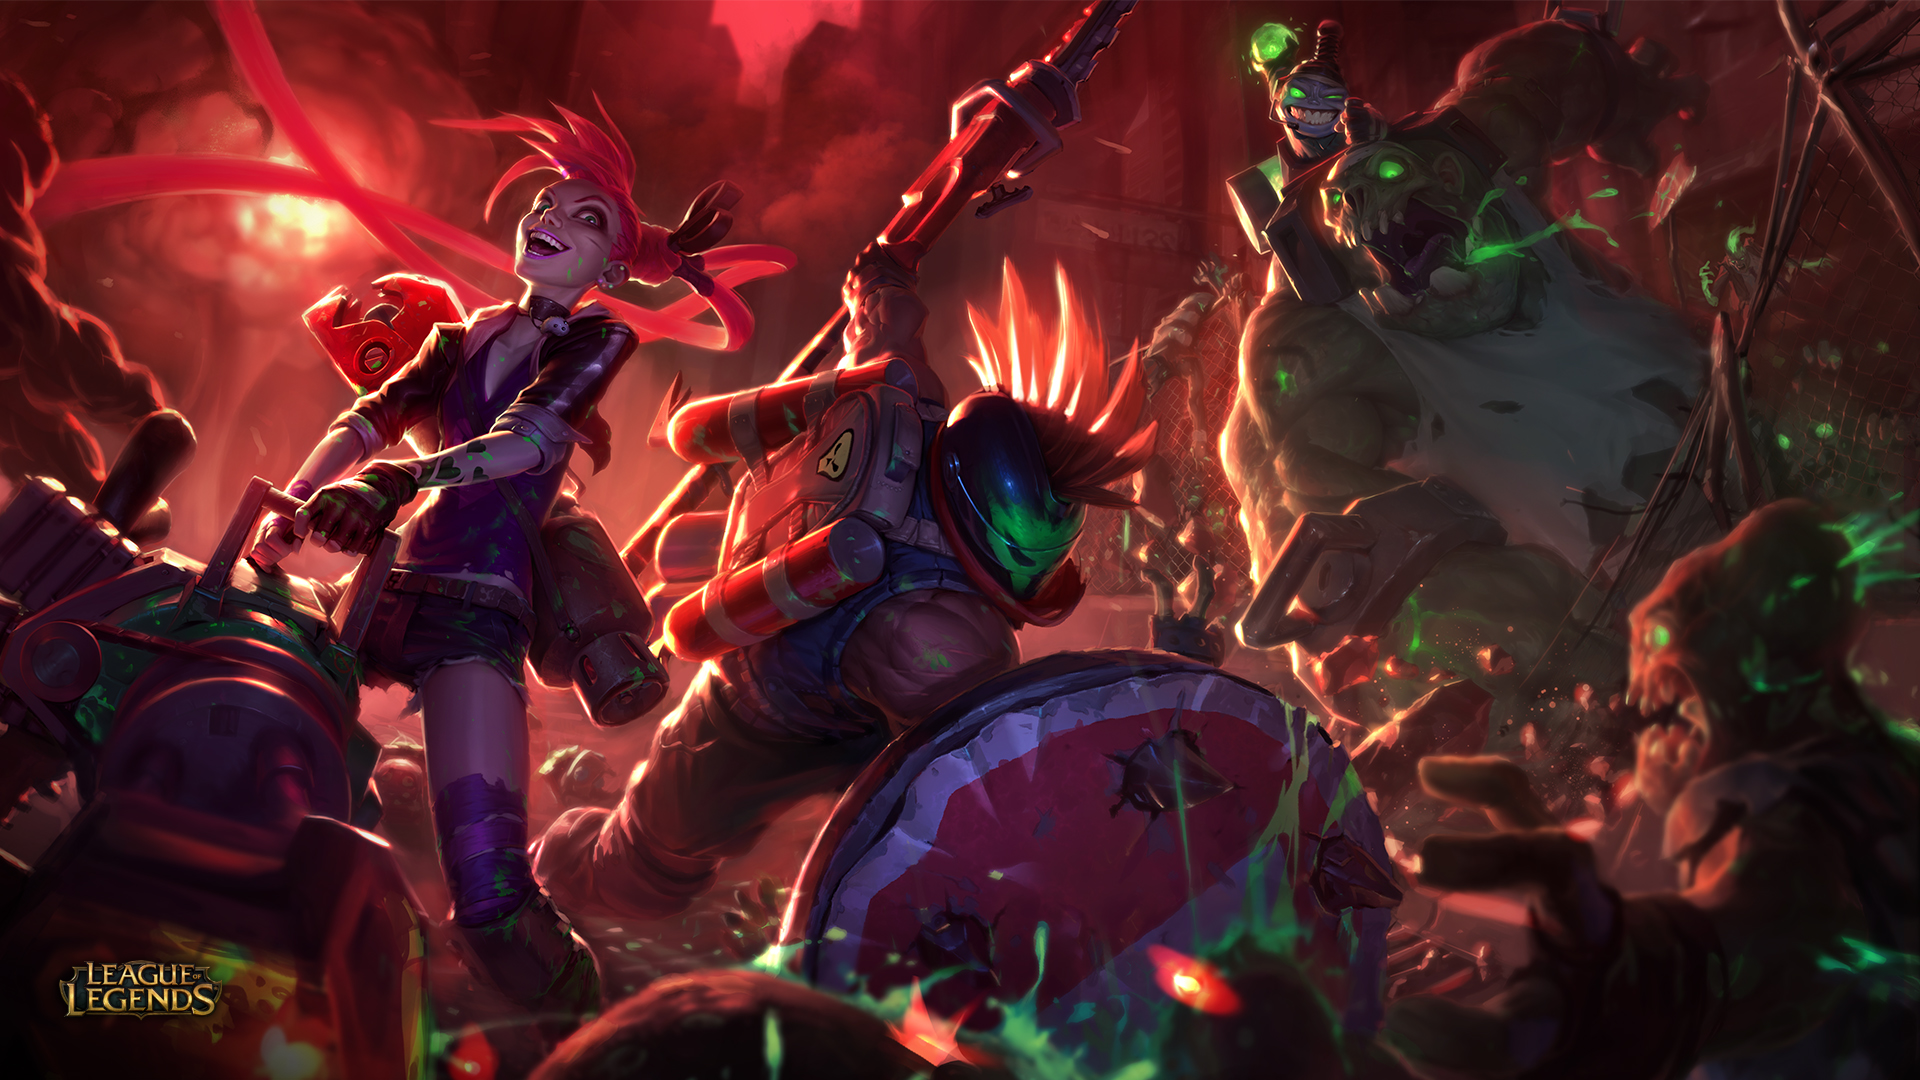 Slayers Skins League Of Legends Wallpapers HD 1920x1080 1